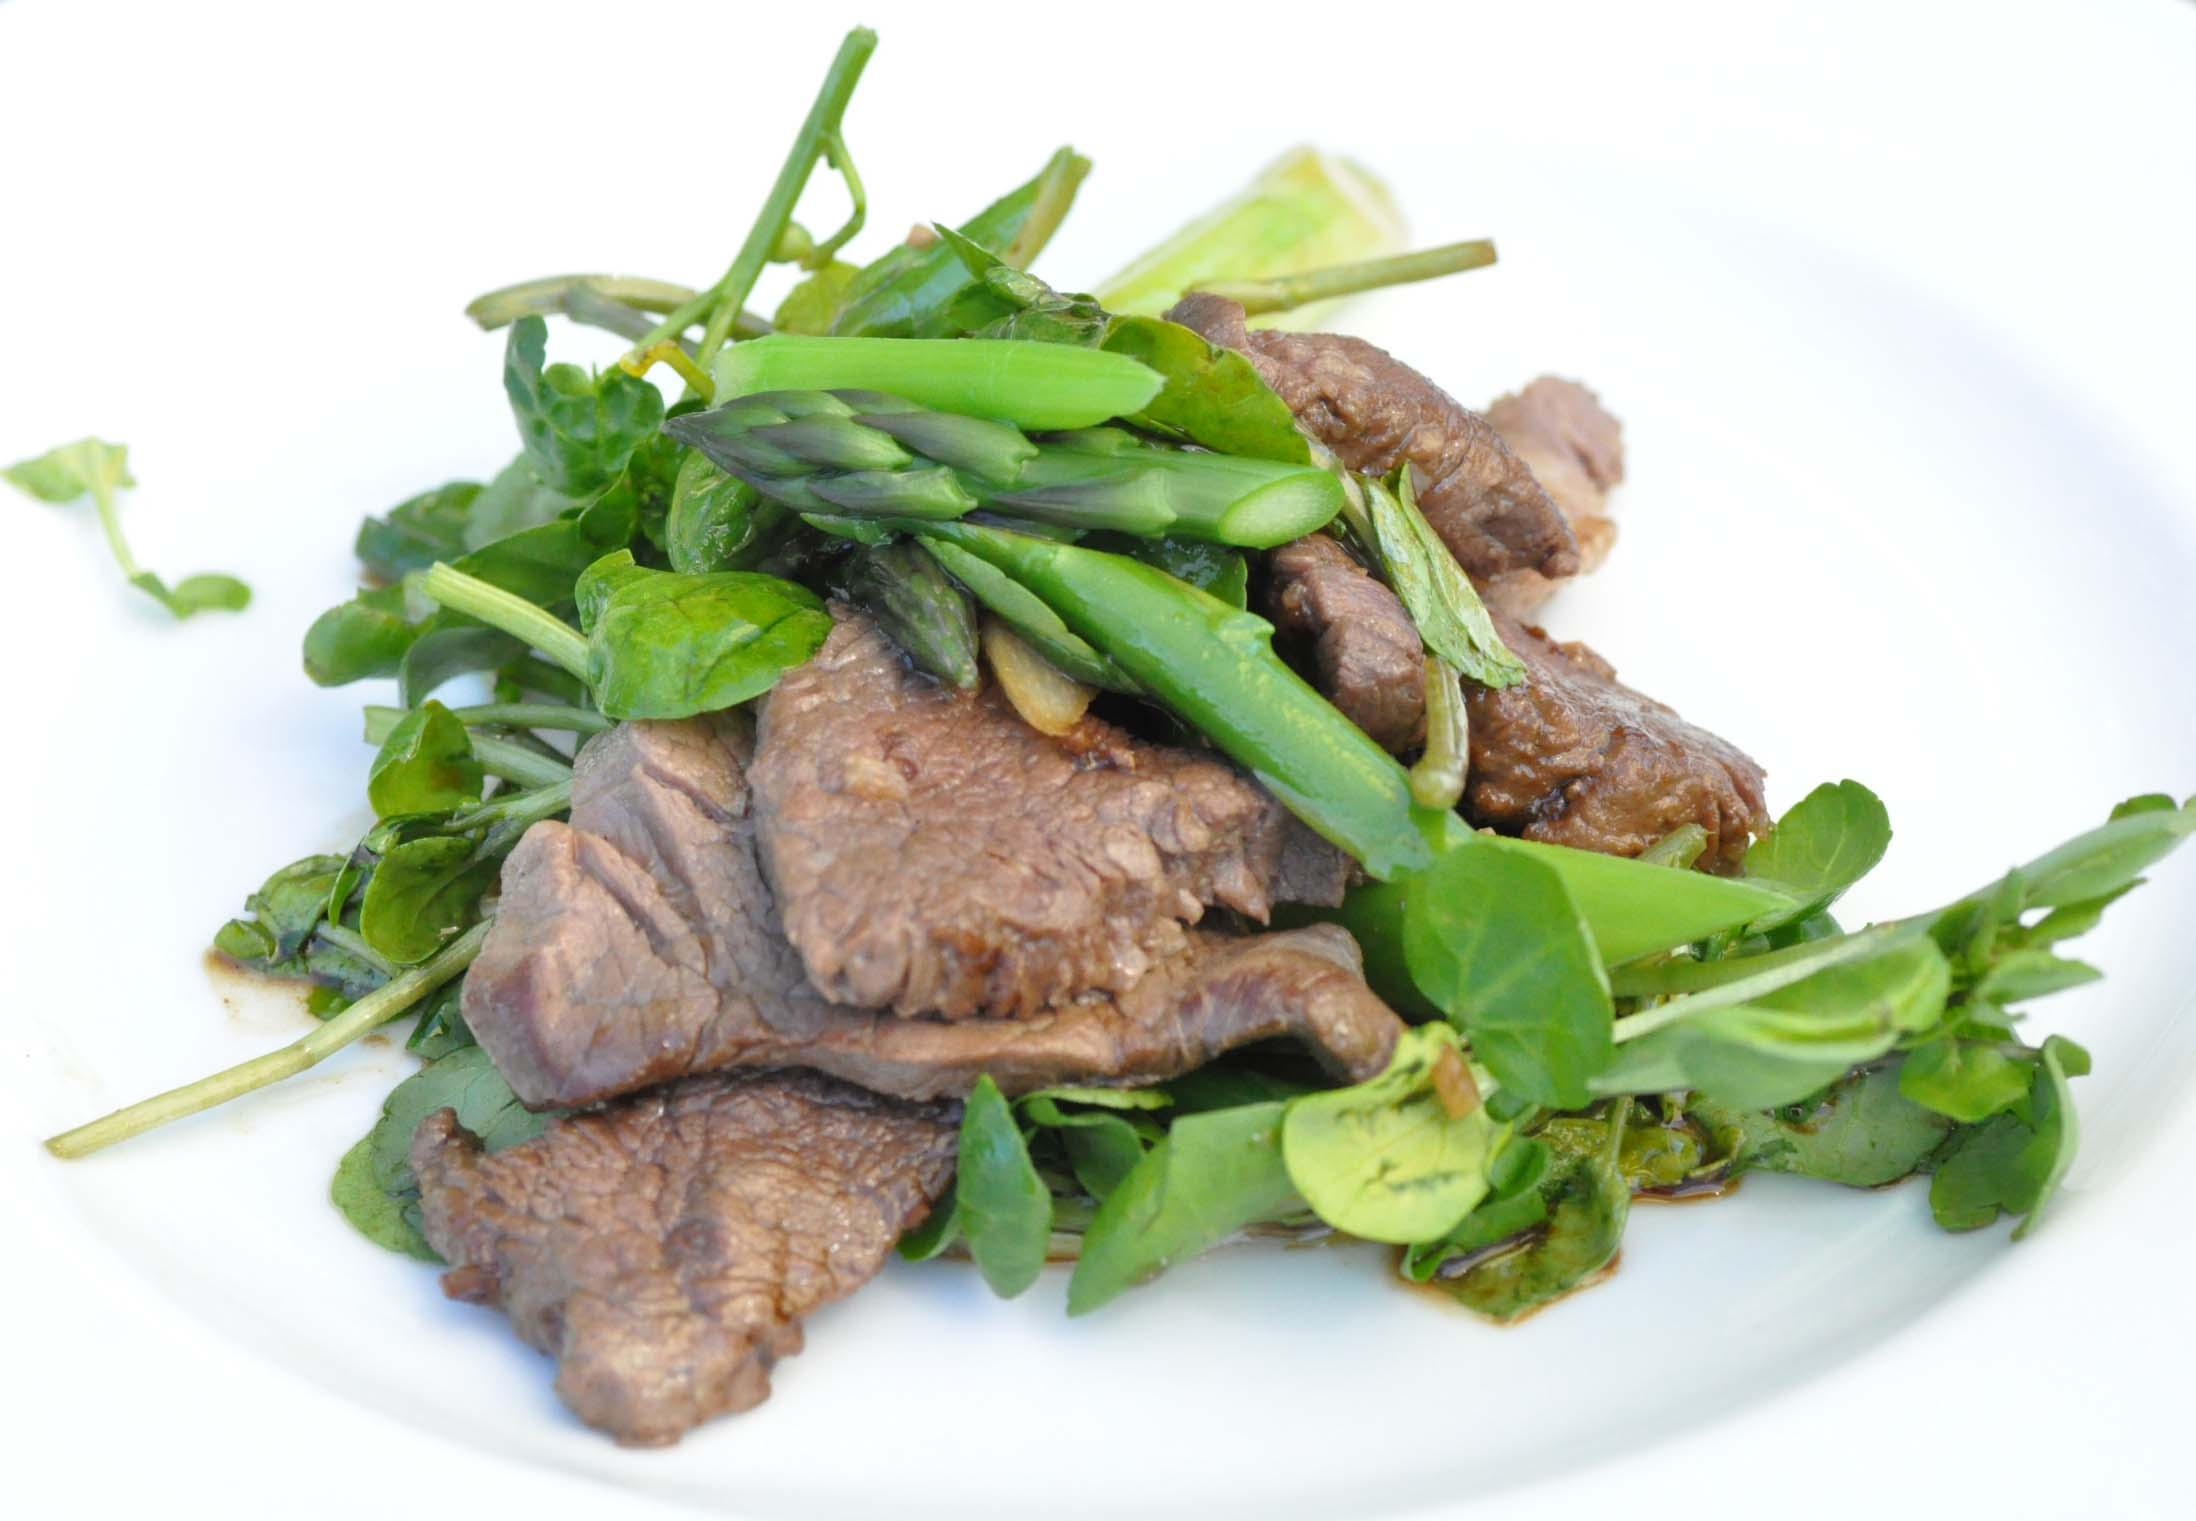 asparagus and beef_bearbeitet-1